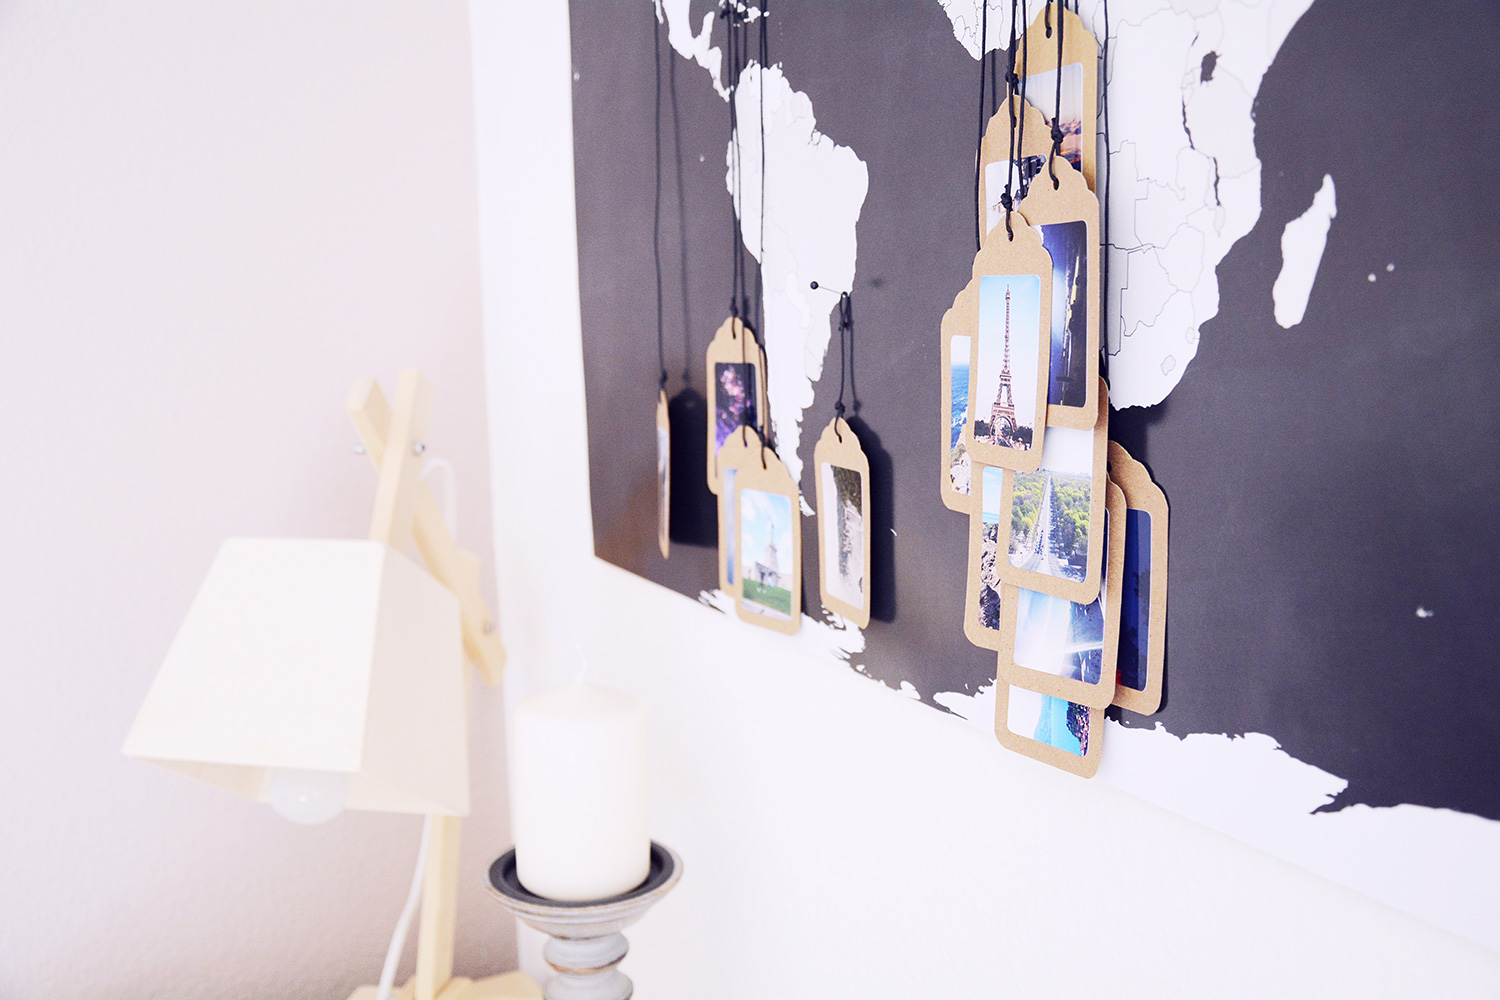 World Map Tagging Wall Art for Vintage Decor Ideas